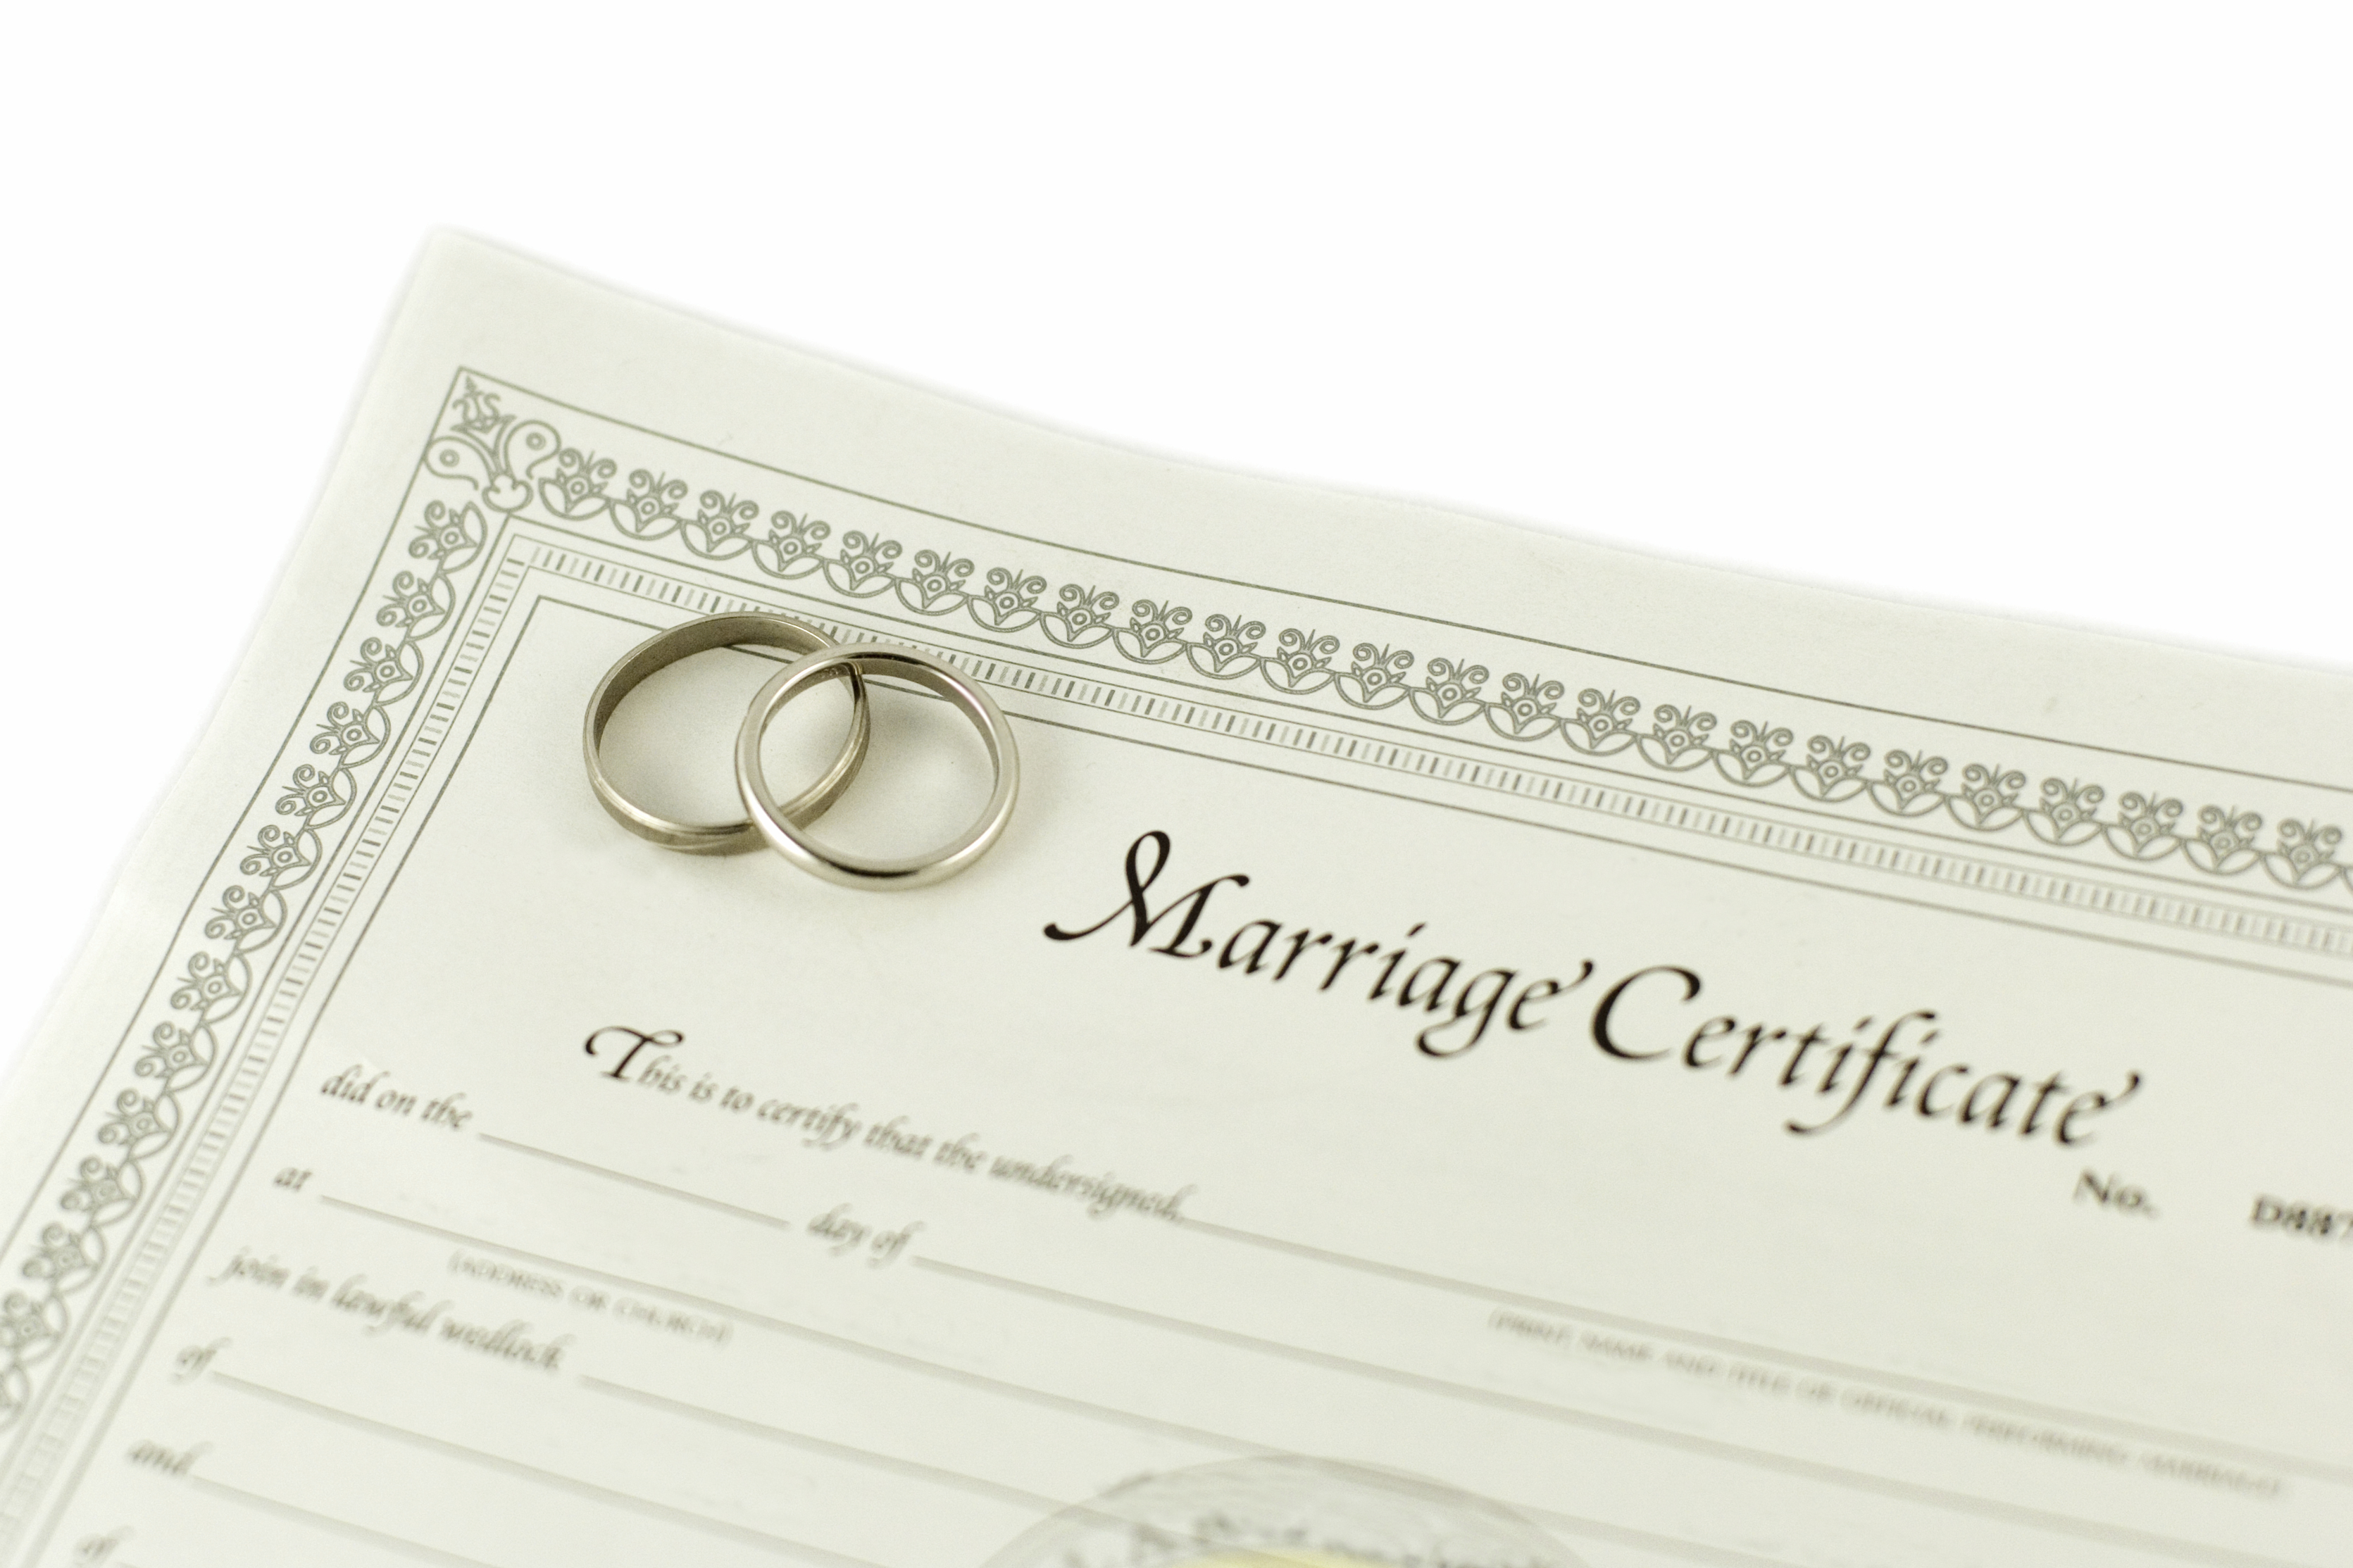 Crafting a marriage contract that sticks lawyers insurance the following article originally appeared in the september 26 2014 issue of the lawyers weekly and has been reprinted with permission from the author thecheapjerseys Gallery